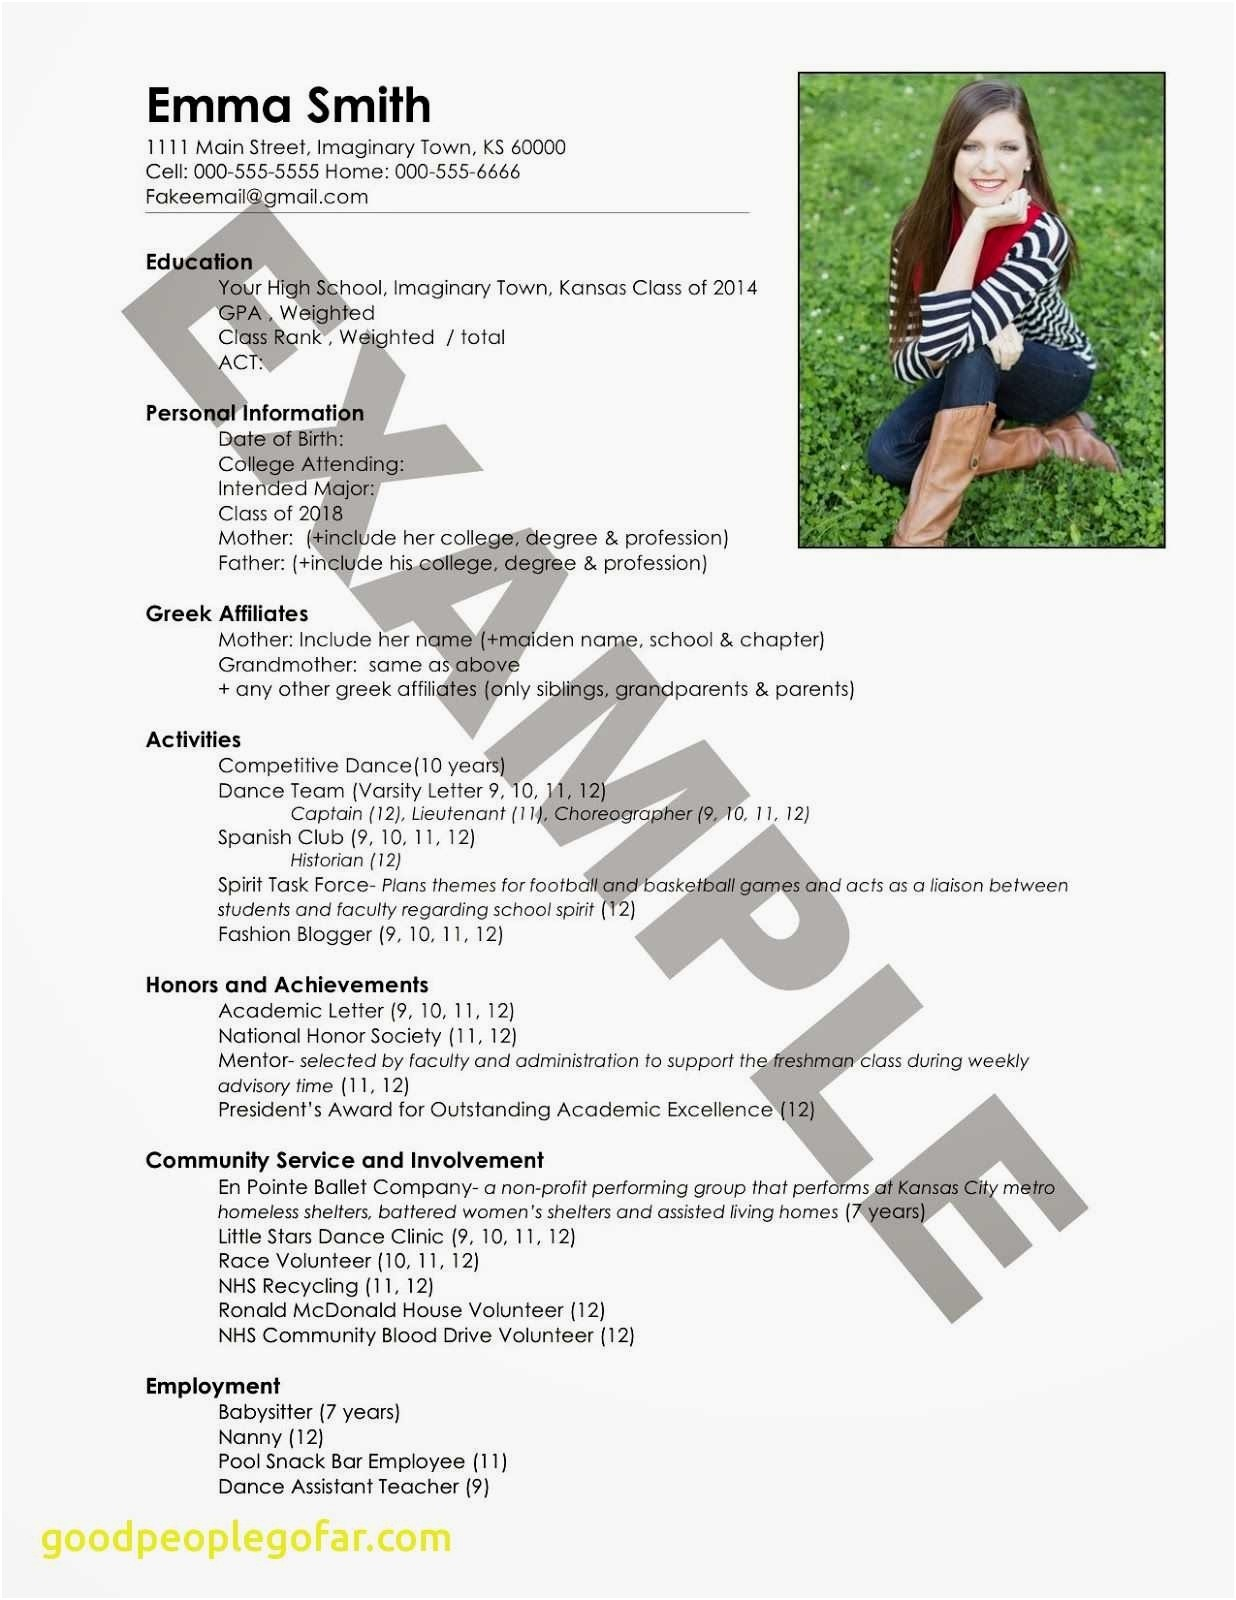 Help Making A Resume - Resume Help Free Awesome Fresh Entry Level Resume sorority Resume 0d